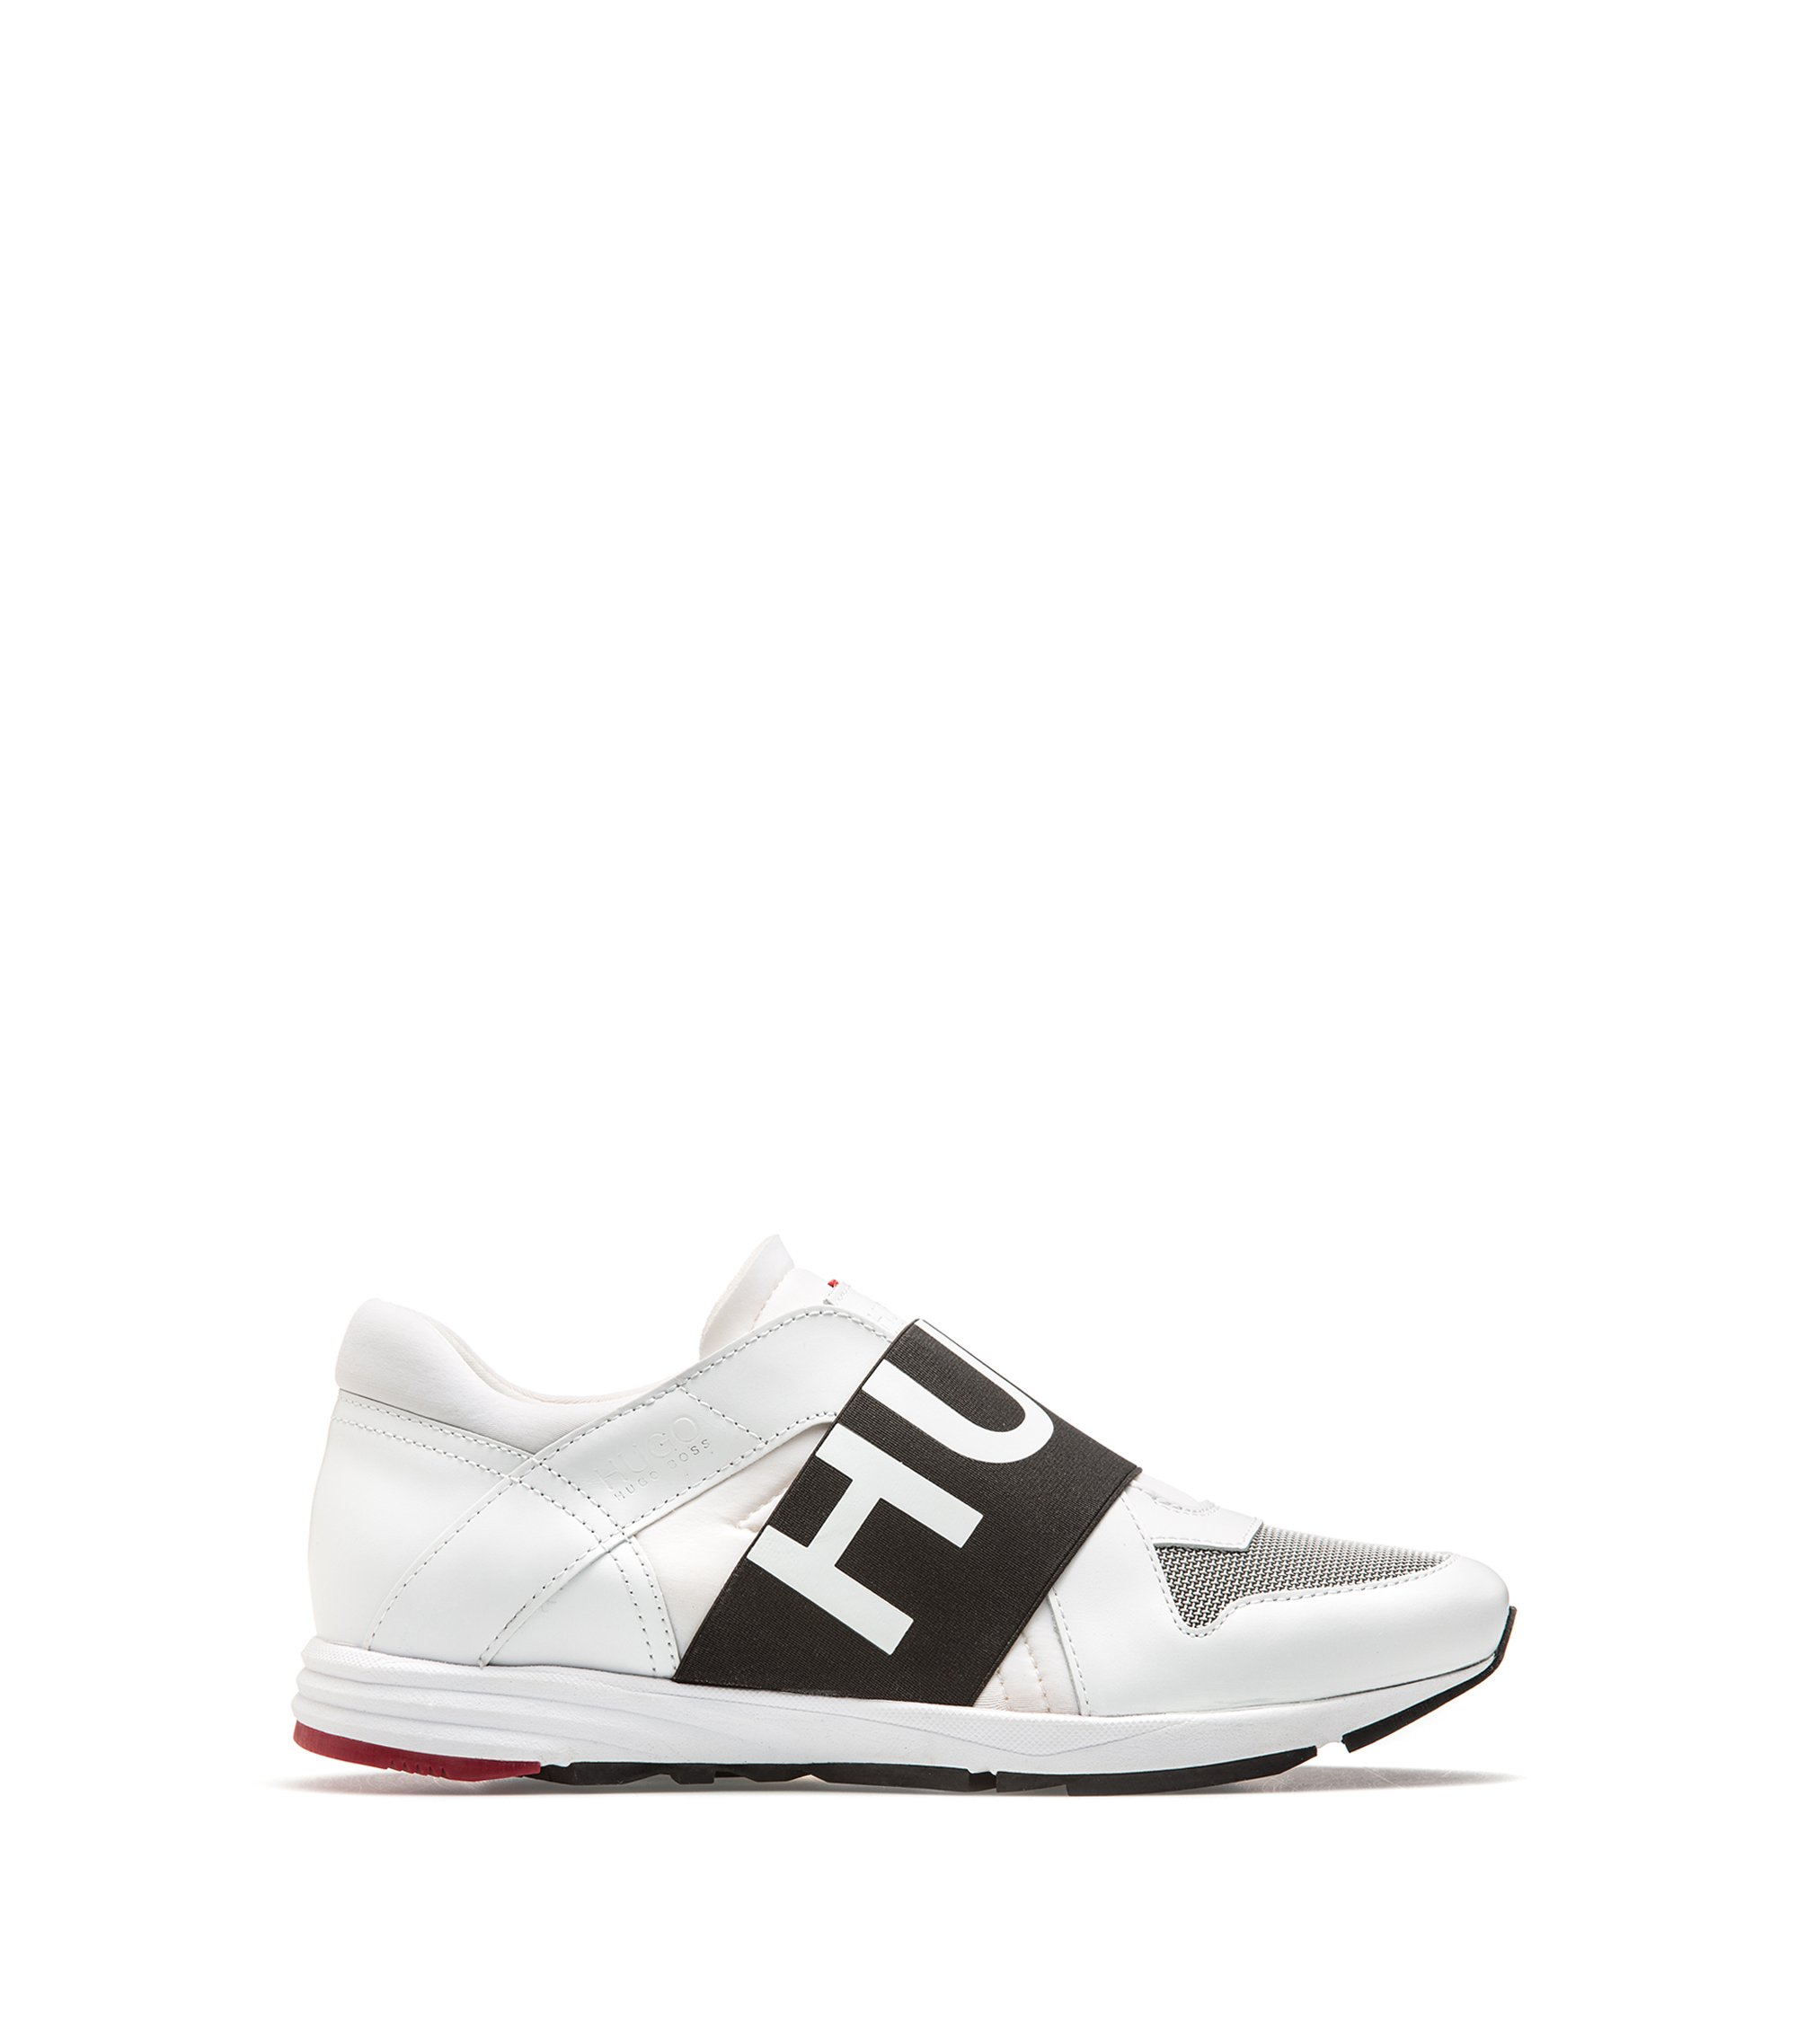 Sneakers in pelle low-top con fascia con logo, Bianco